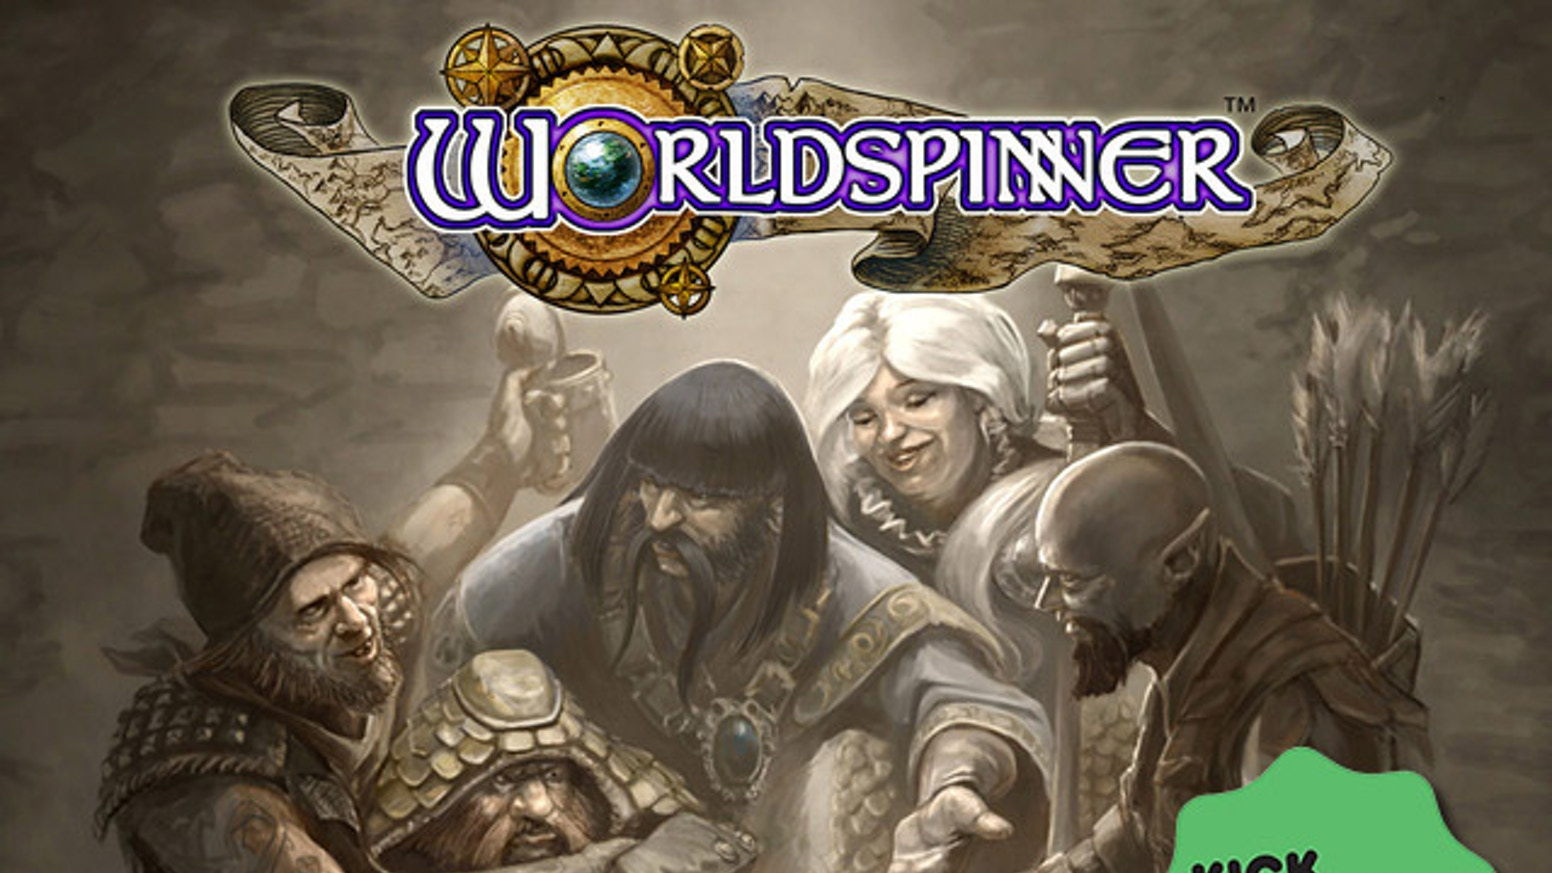 Worldspinner fantasy rpg worldbuilder map maker by worldspinner worldspinner makes it easy to create richly detailed maps of your own fantasy world in minutes gumiabroncs Images